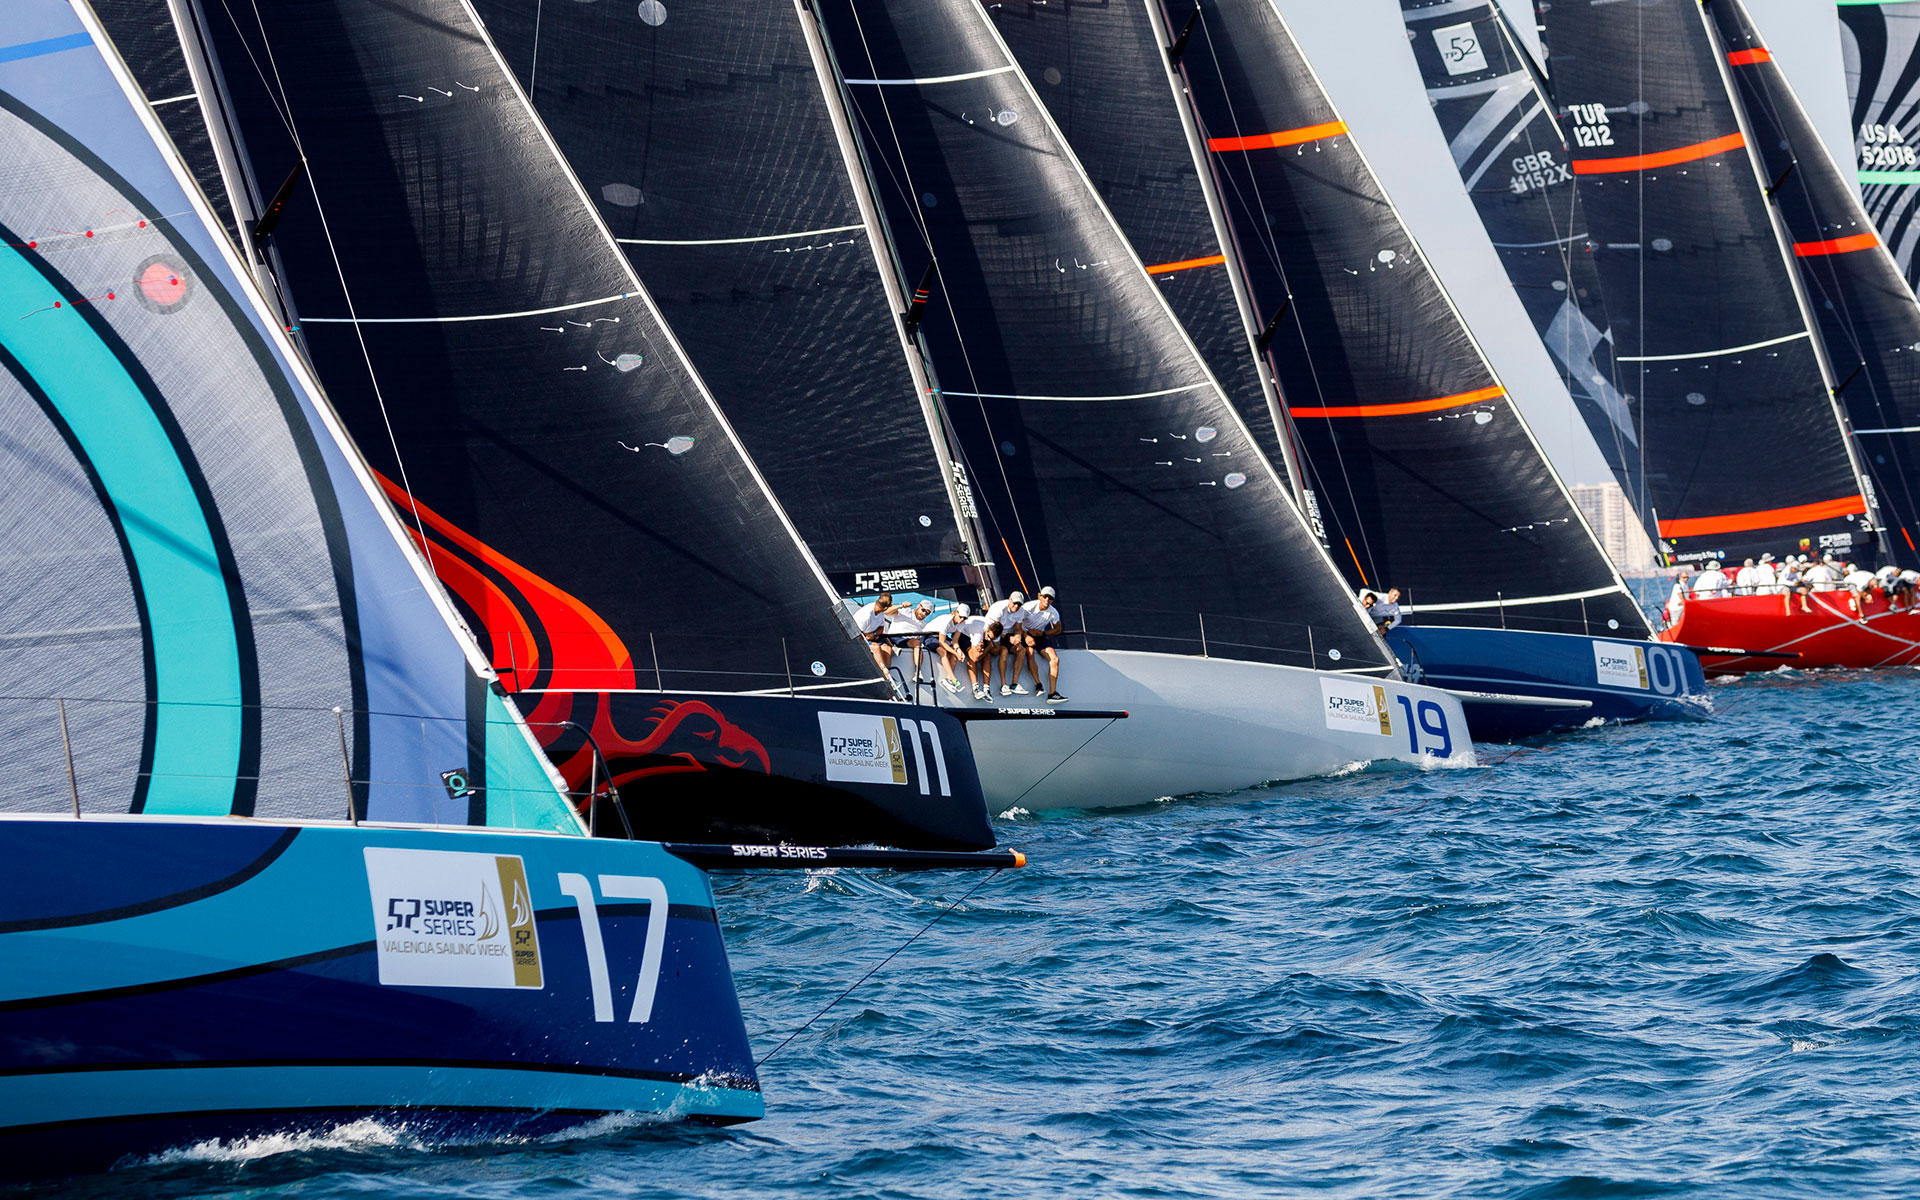 The 52 Super Series, TP 52, sailing, sustainability, news